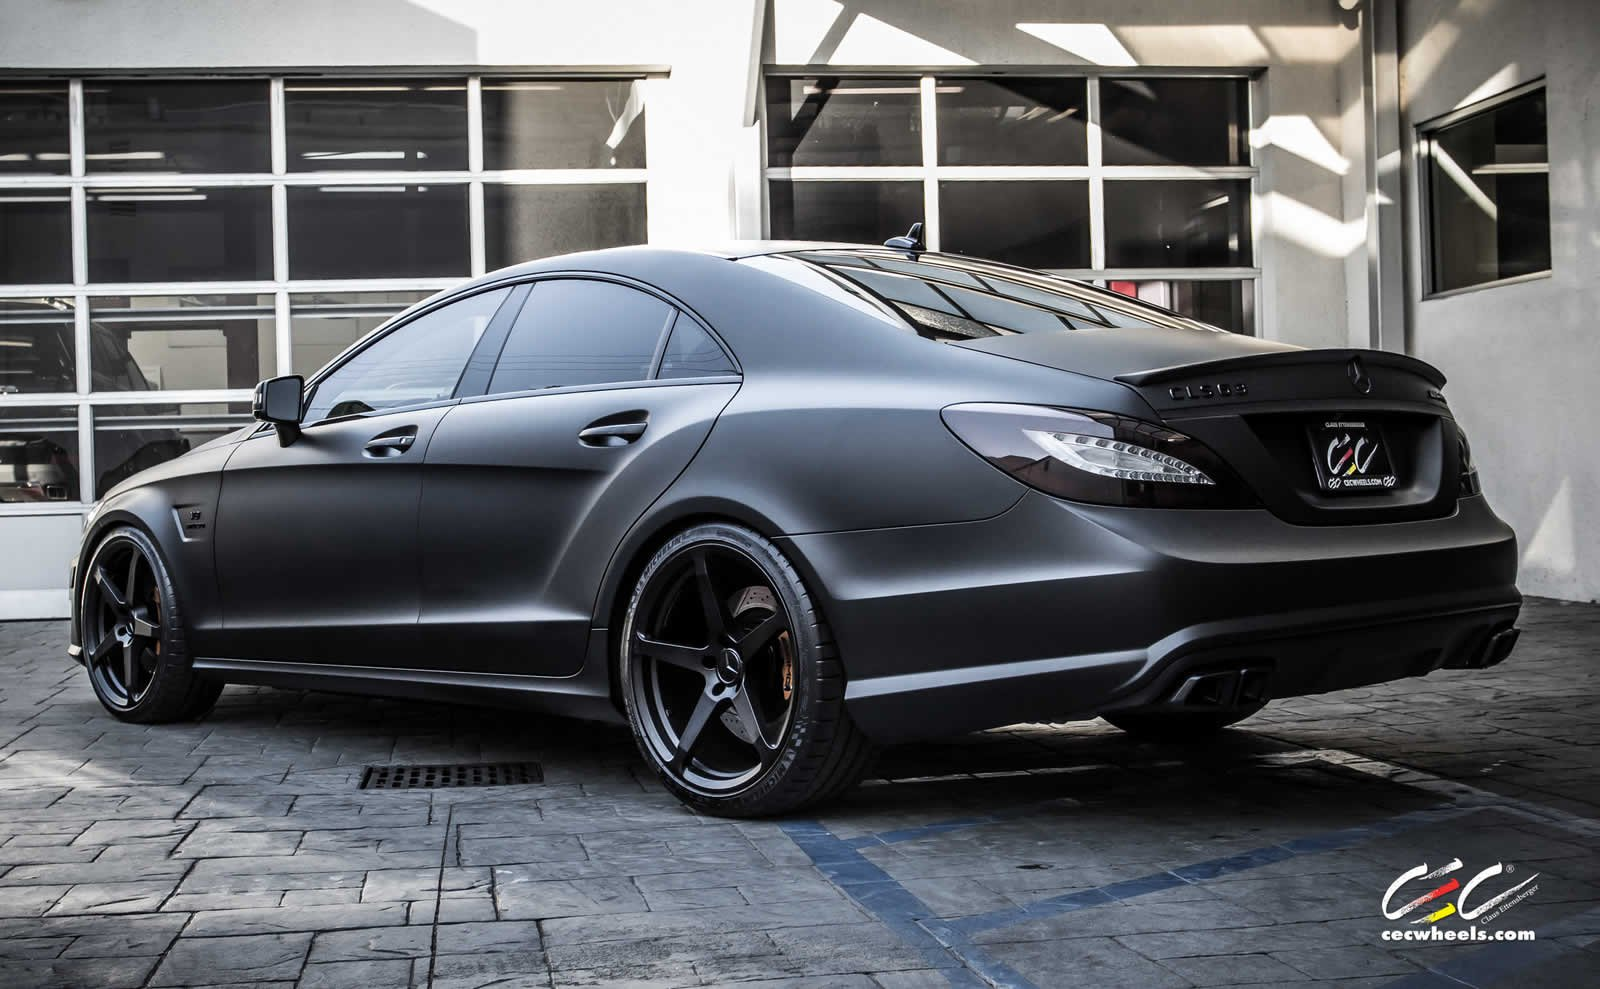 2015 cec wheels tuning cars mercedes benz cls63 amg. Black Bedroom Furniture Sets. Home Design Ideas